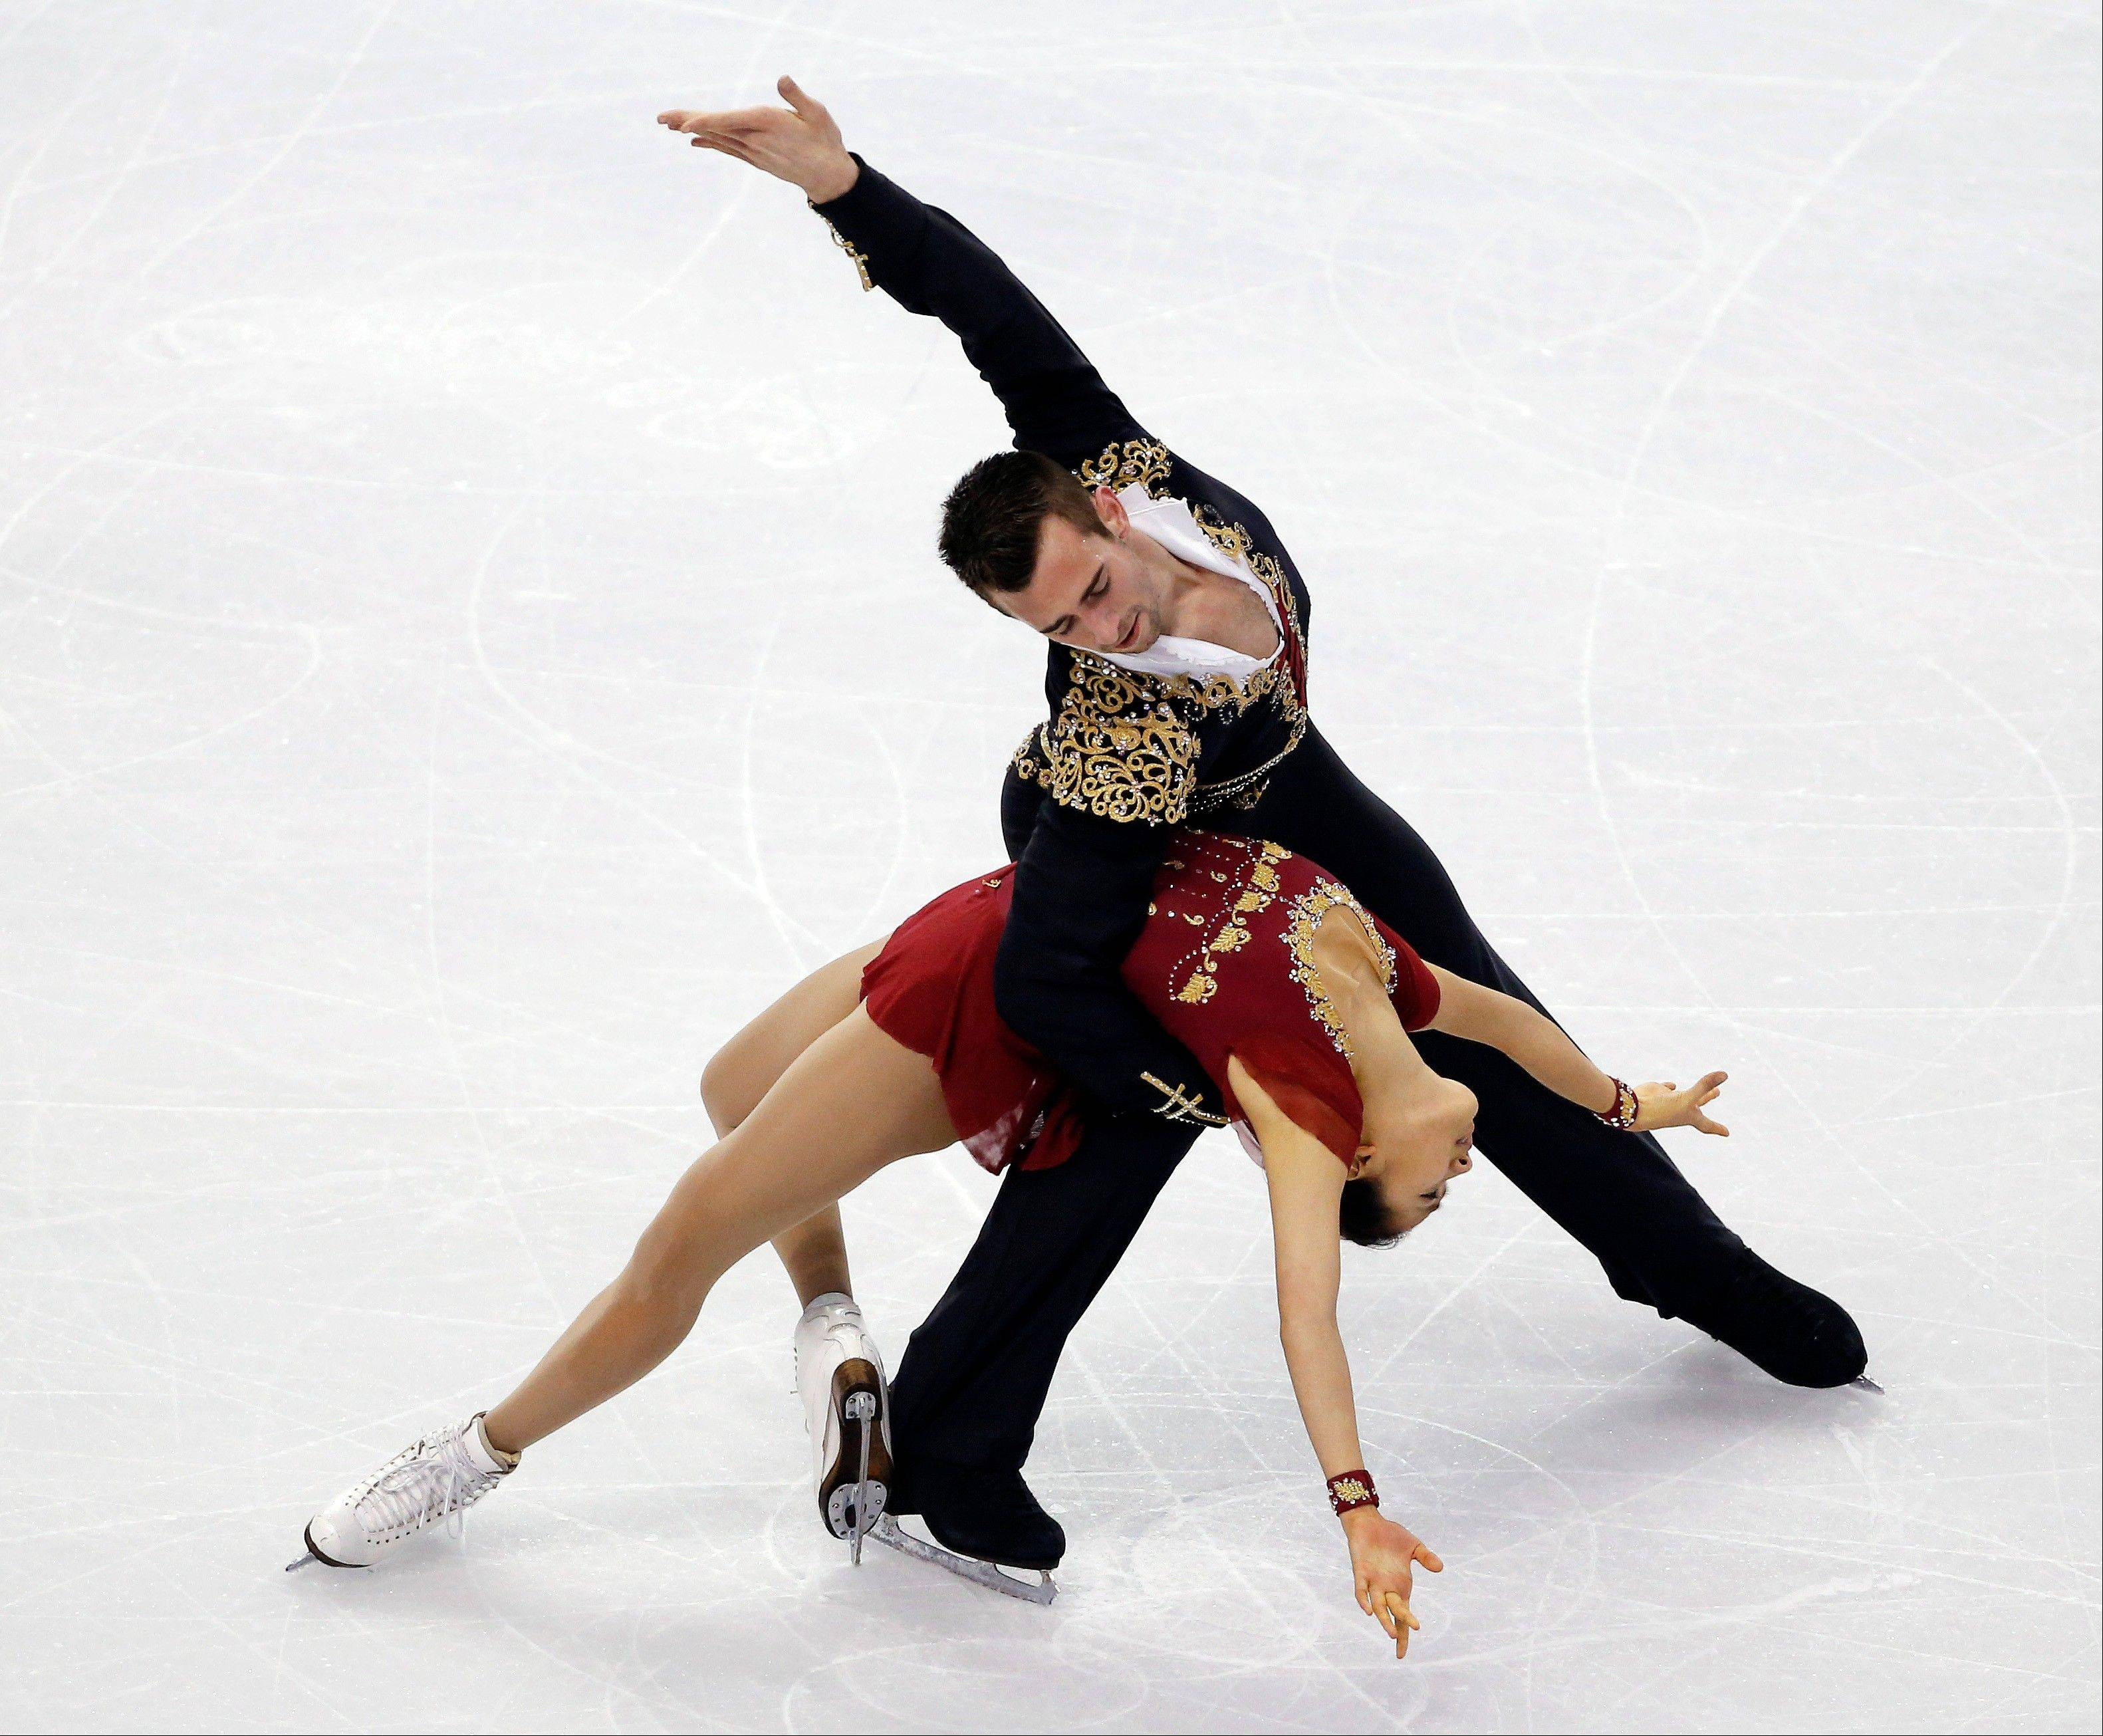 DeeDee Leng of Naperville and Timothy LeDuc show their form during the pairs free skate at the U.S. Figure Skating Championships in Boston.